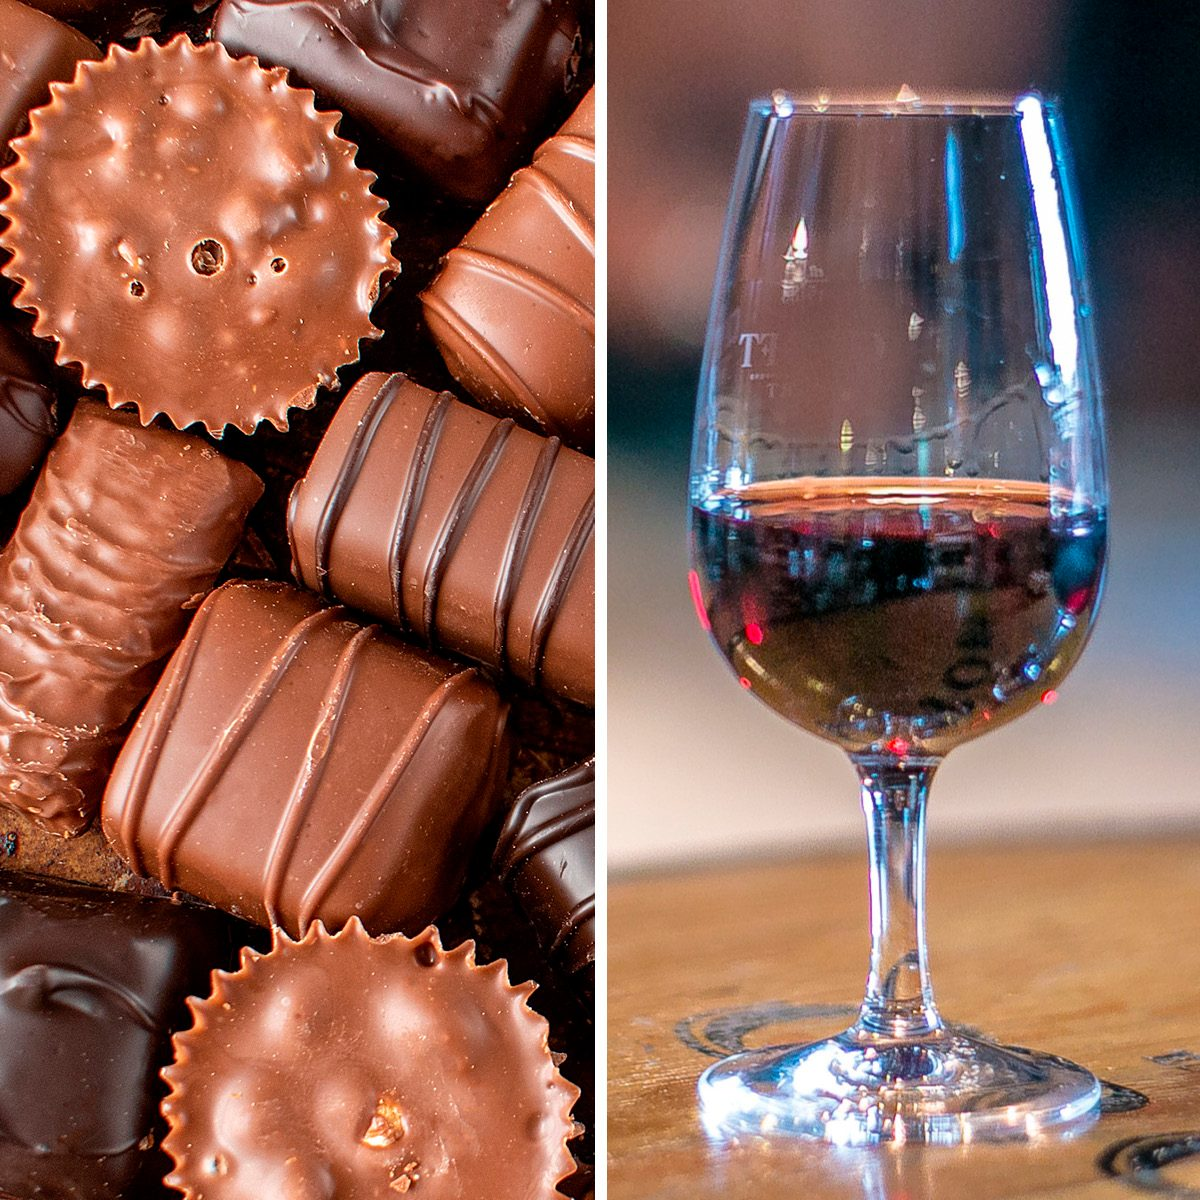 assorted fancy chocolate candy pieces flat lay; Shutterstock ID 1264229098; Job (TFH, TOH, RD, BNB, CWM, CM): TOH Two Port Wine glasses against a Port Winery background in Portugal; Shutterstock ID 759880831; Job (TFH, TOH, RD, BNB, CWM, CM): TOH